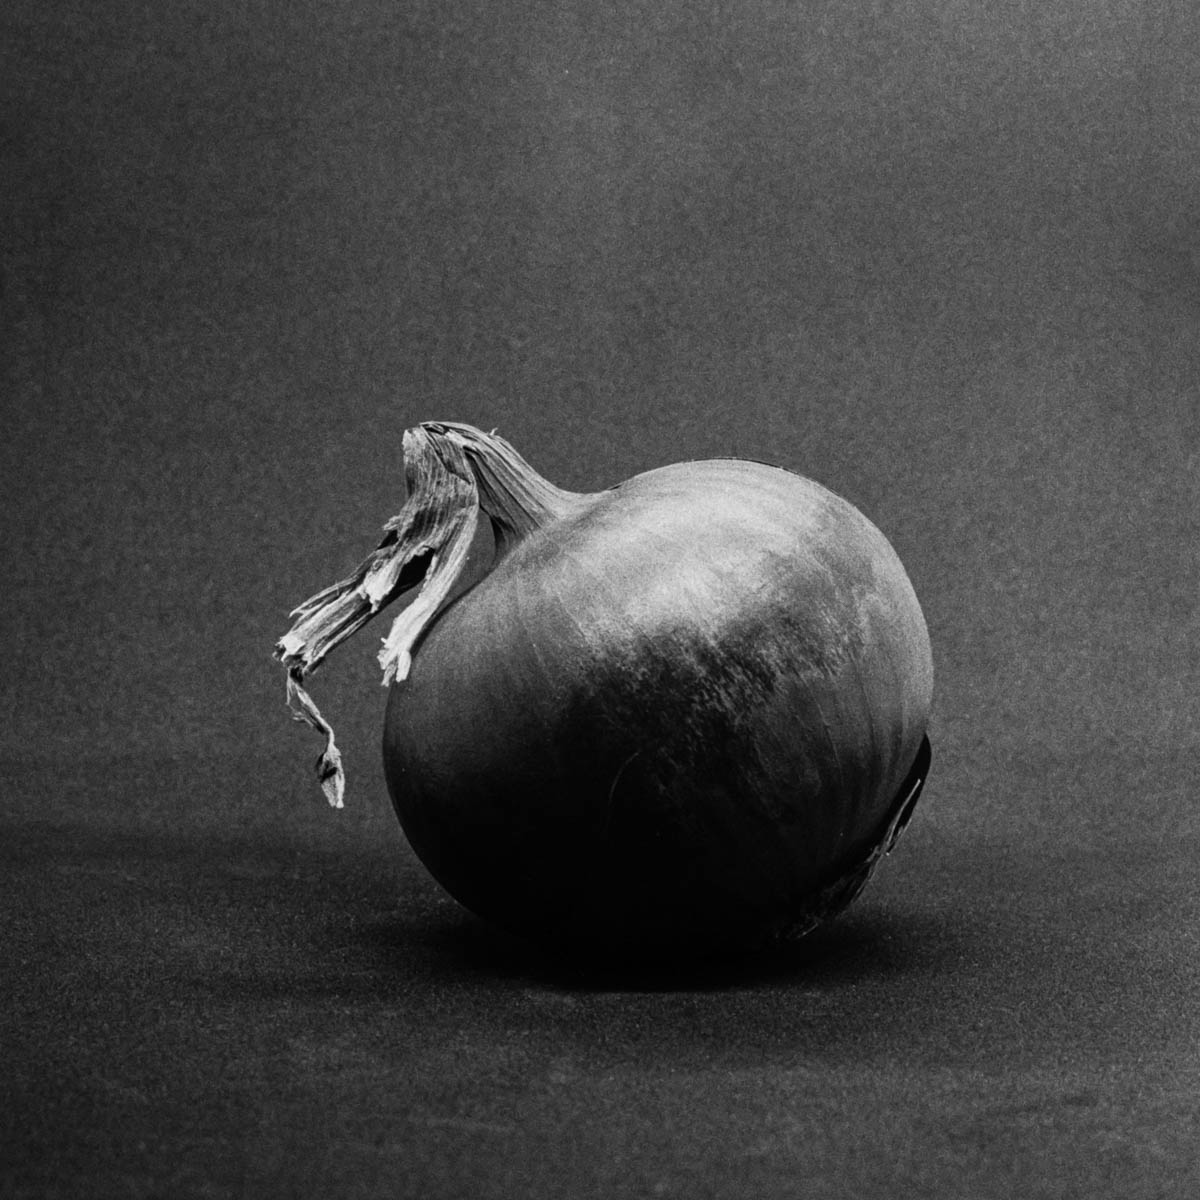 Onion #2 - ILFORD HP5 PLUS, Minolta SRT 101b, MD Rokkor 50mm f/1.7 - Nigel Fishwick